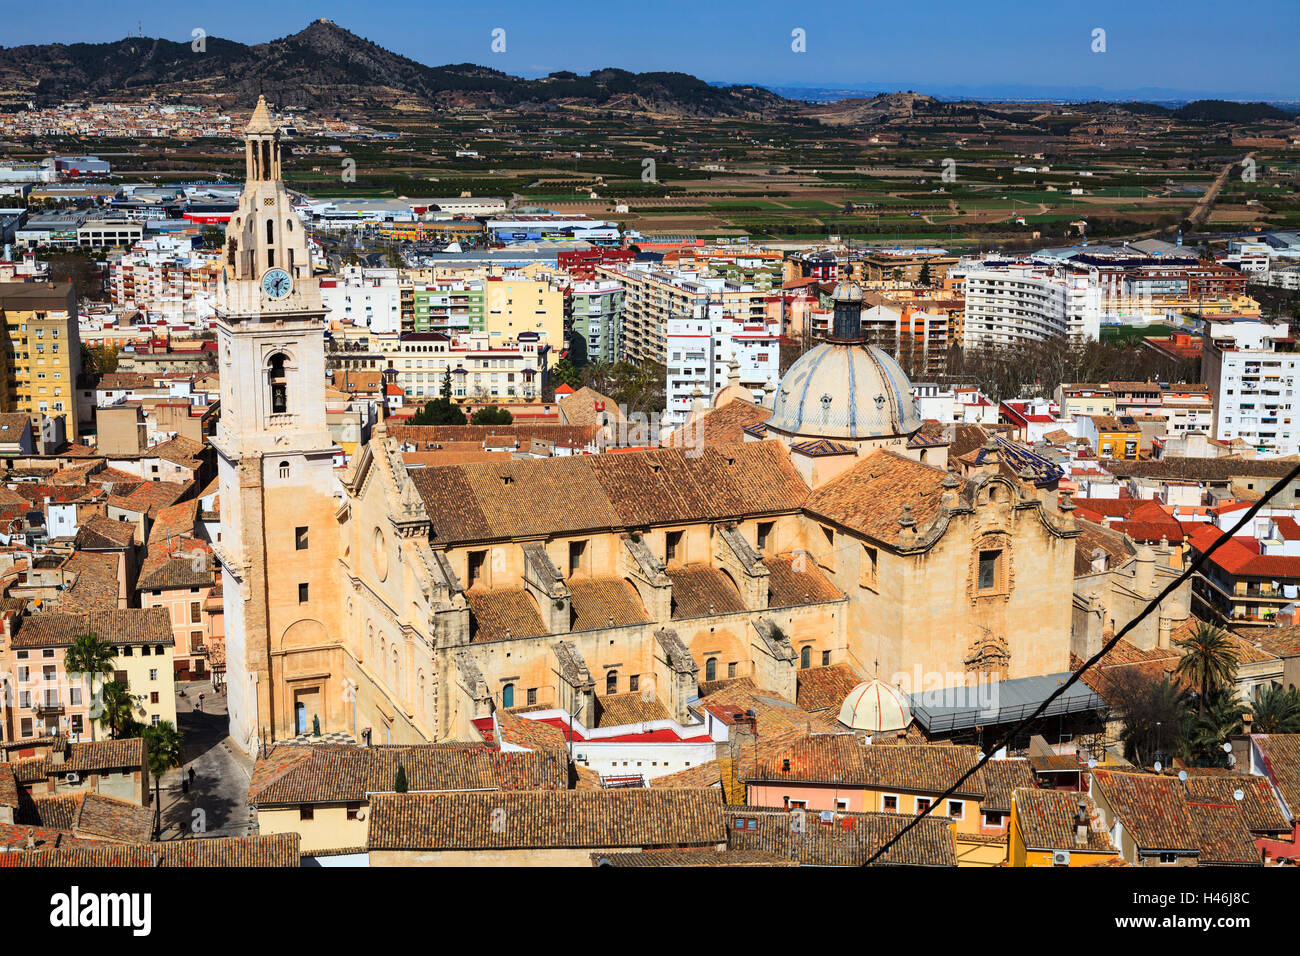 High view of Colegiata Basilica de Santa Maria in Xativa Spain Stock Photo